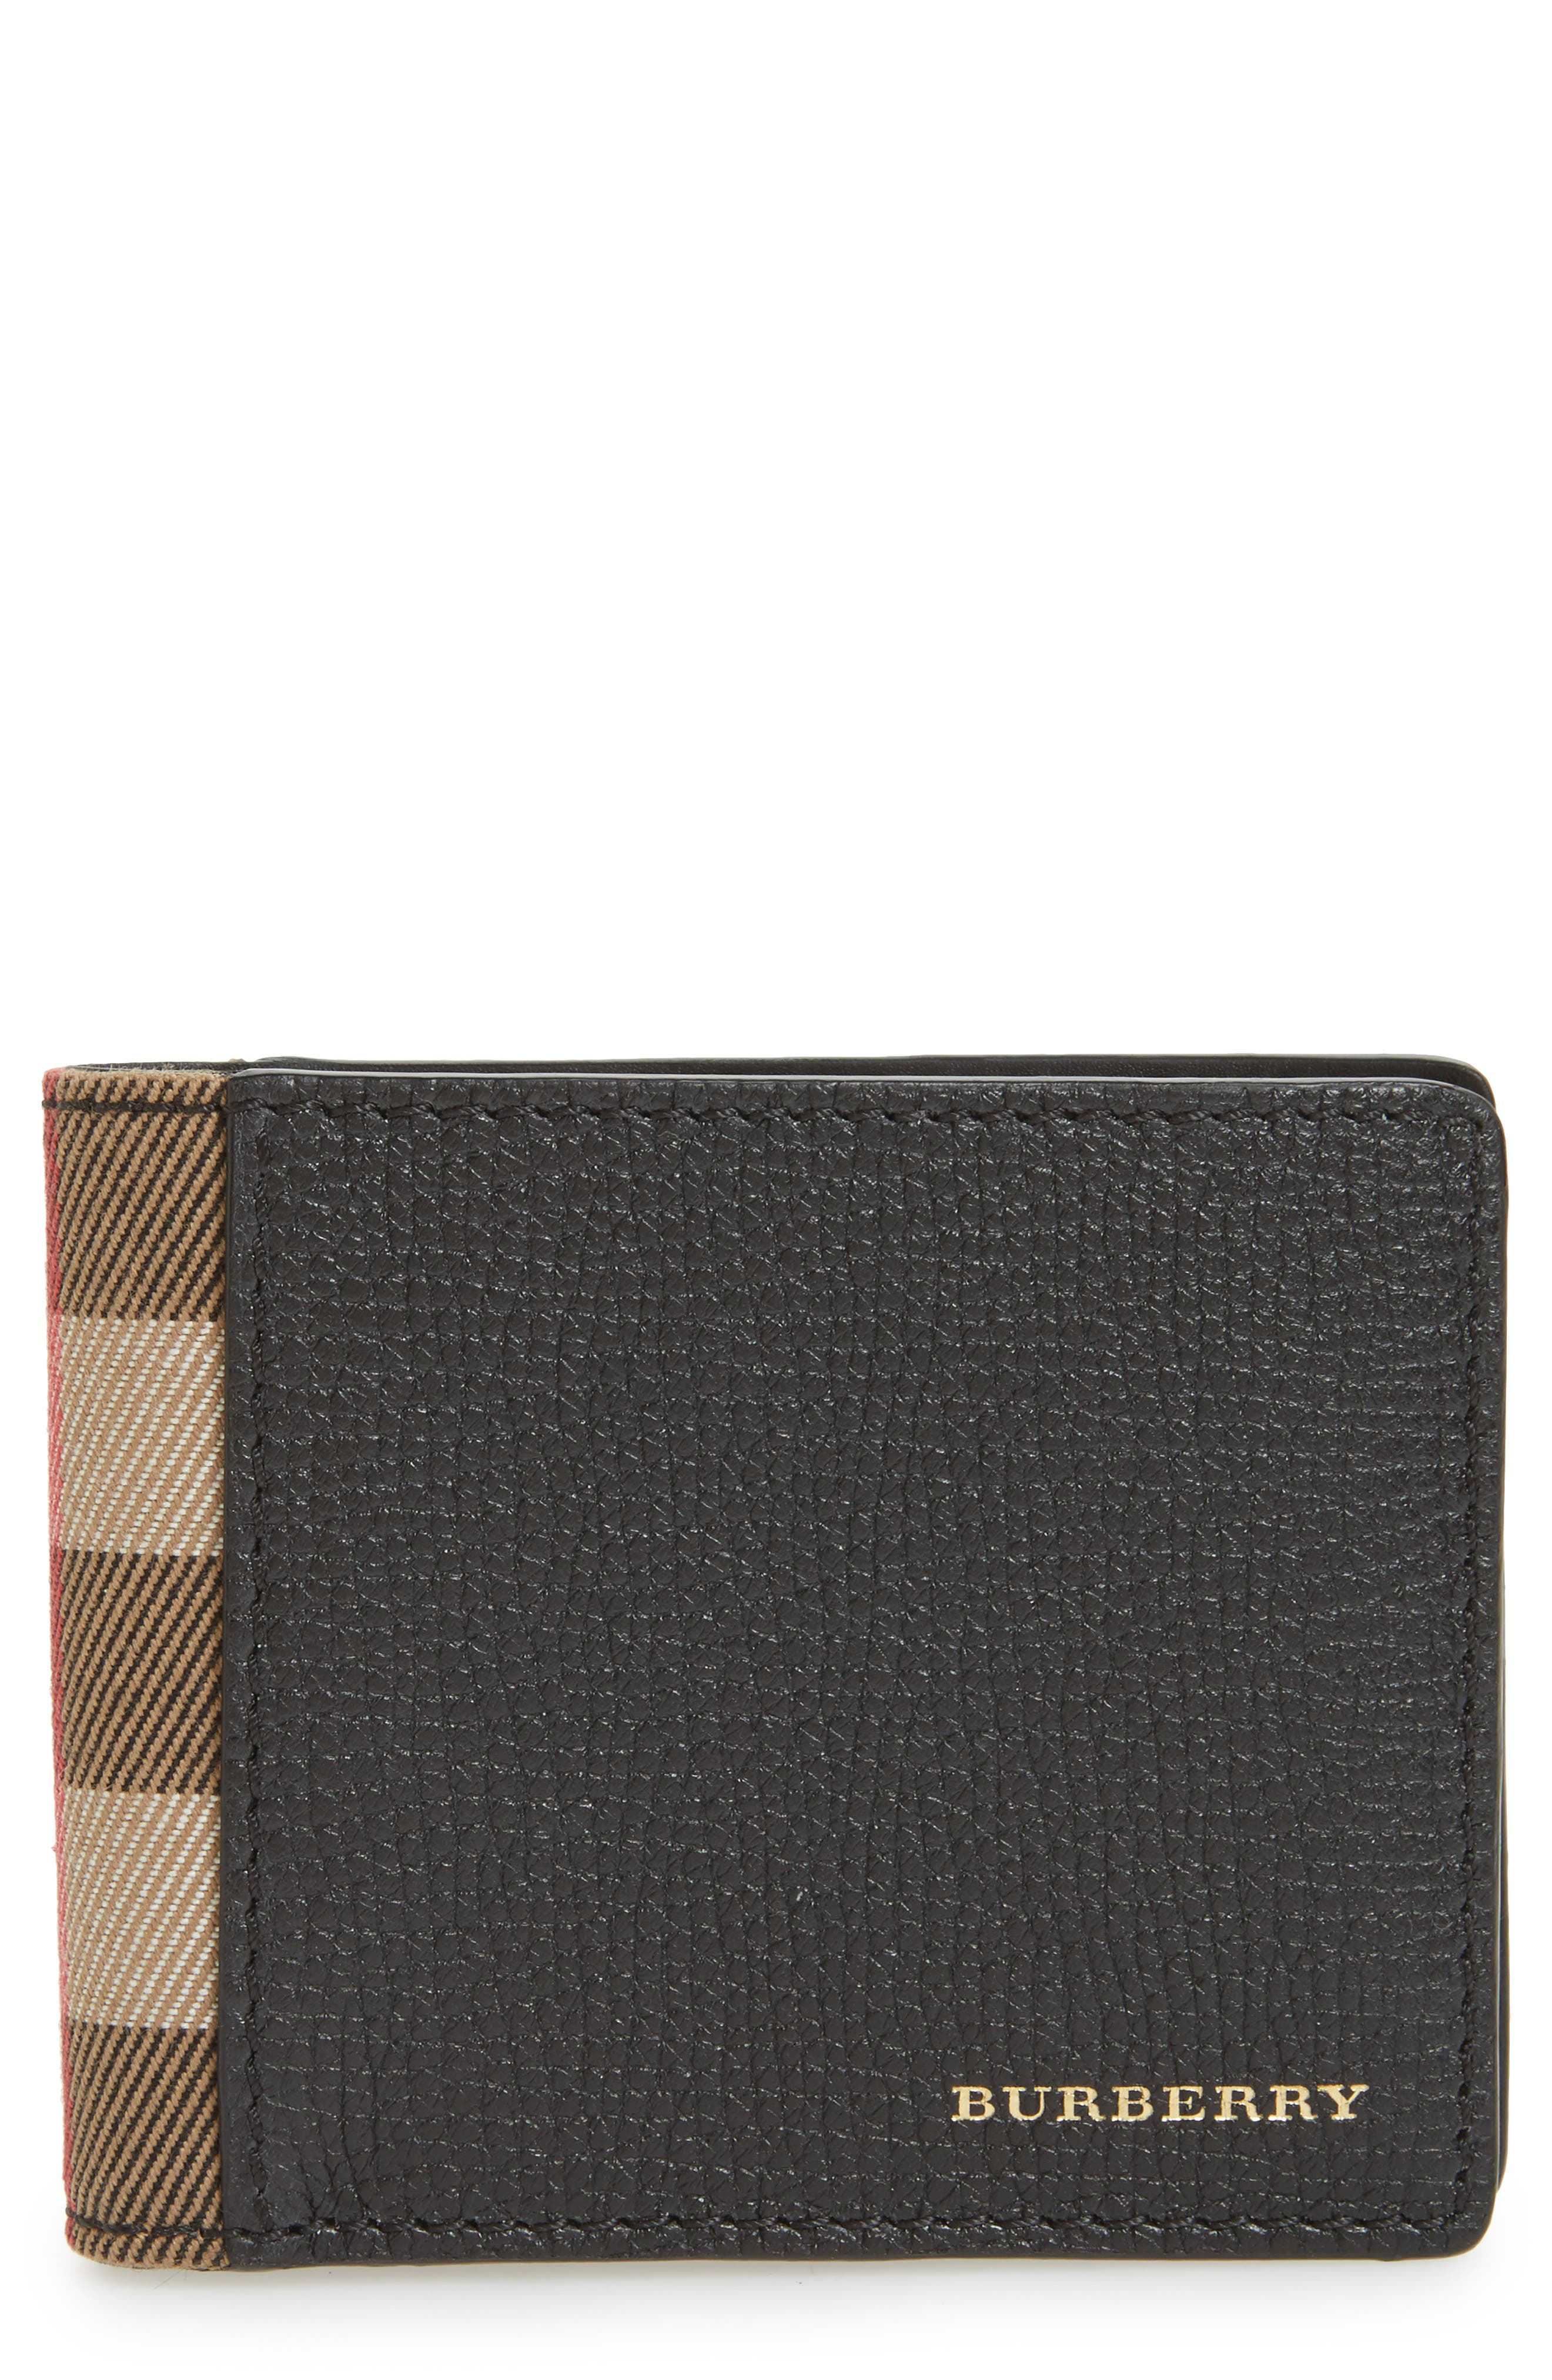 Check Leather Wallet,                             Main thumbnail 1, color,                             001